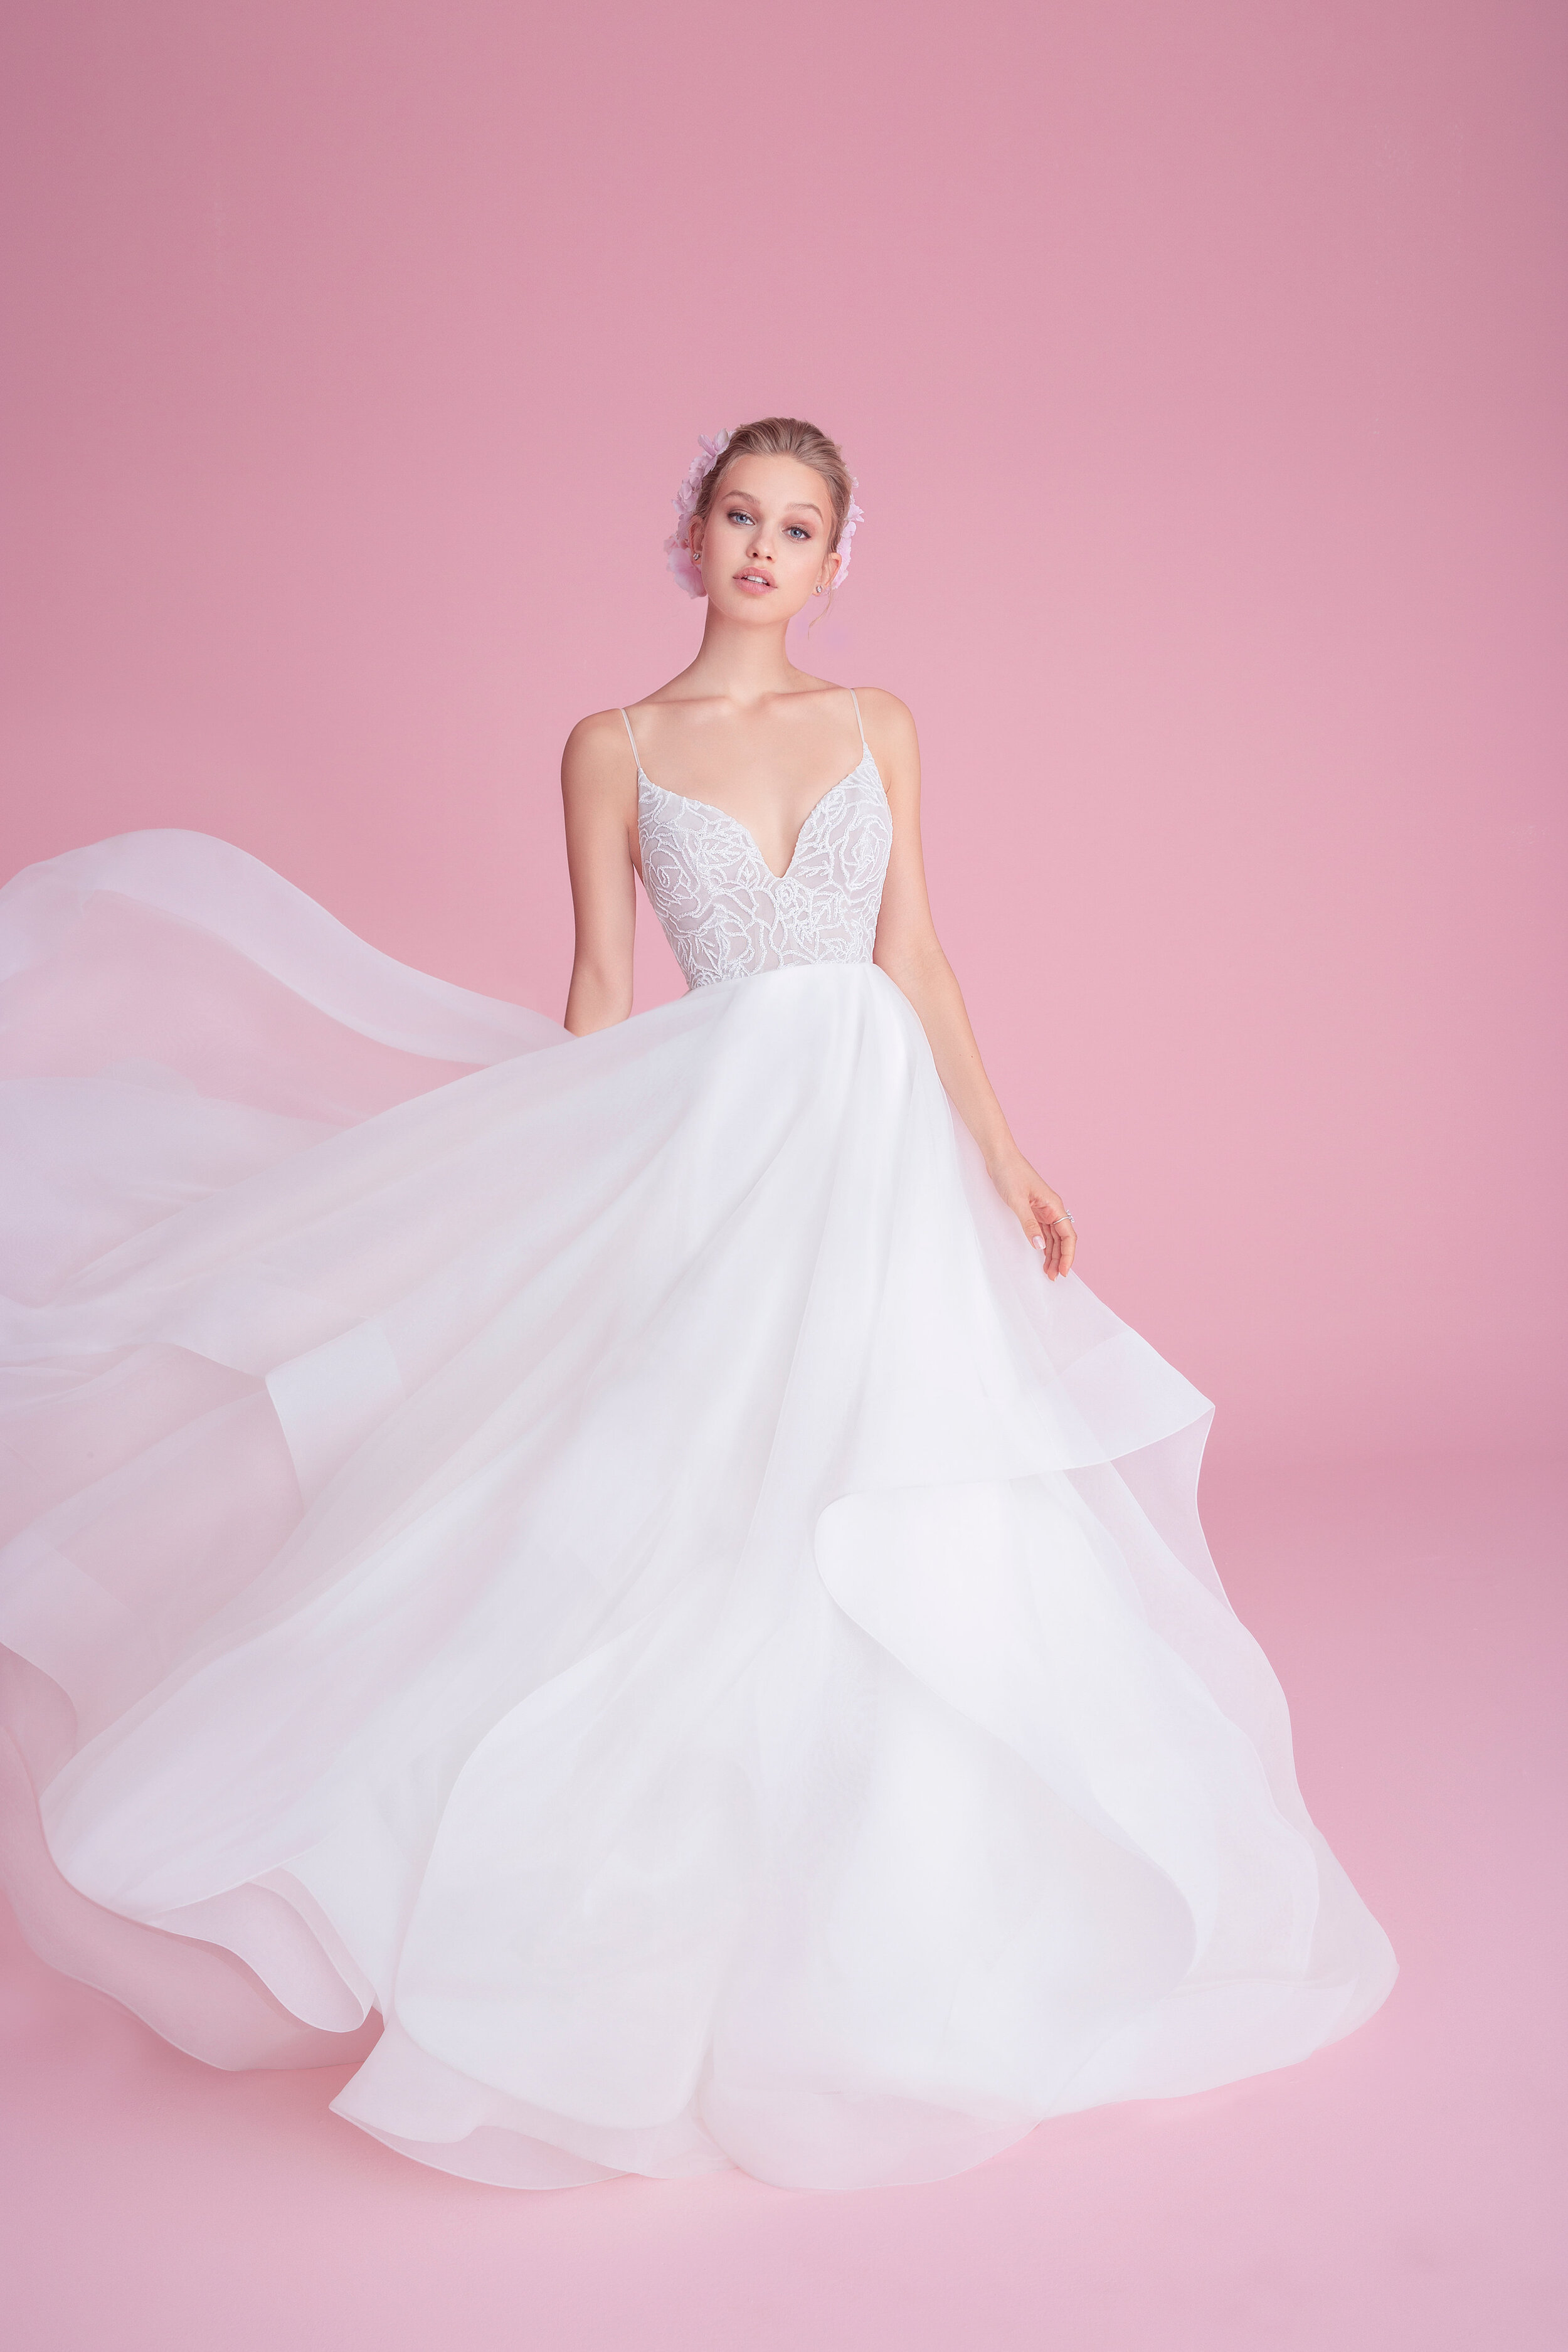 Madeleine S Daughter Bridal Wedding Dresses Boston Wedding Dresses Gowns From The Top Designers